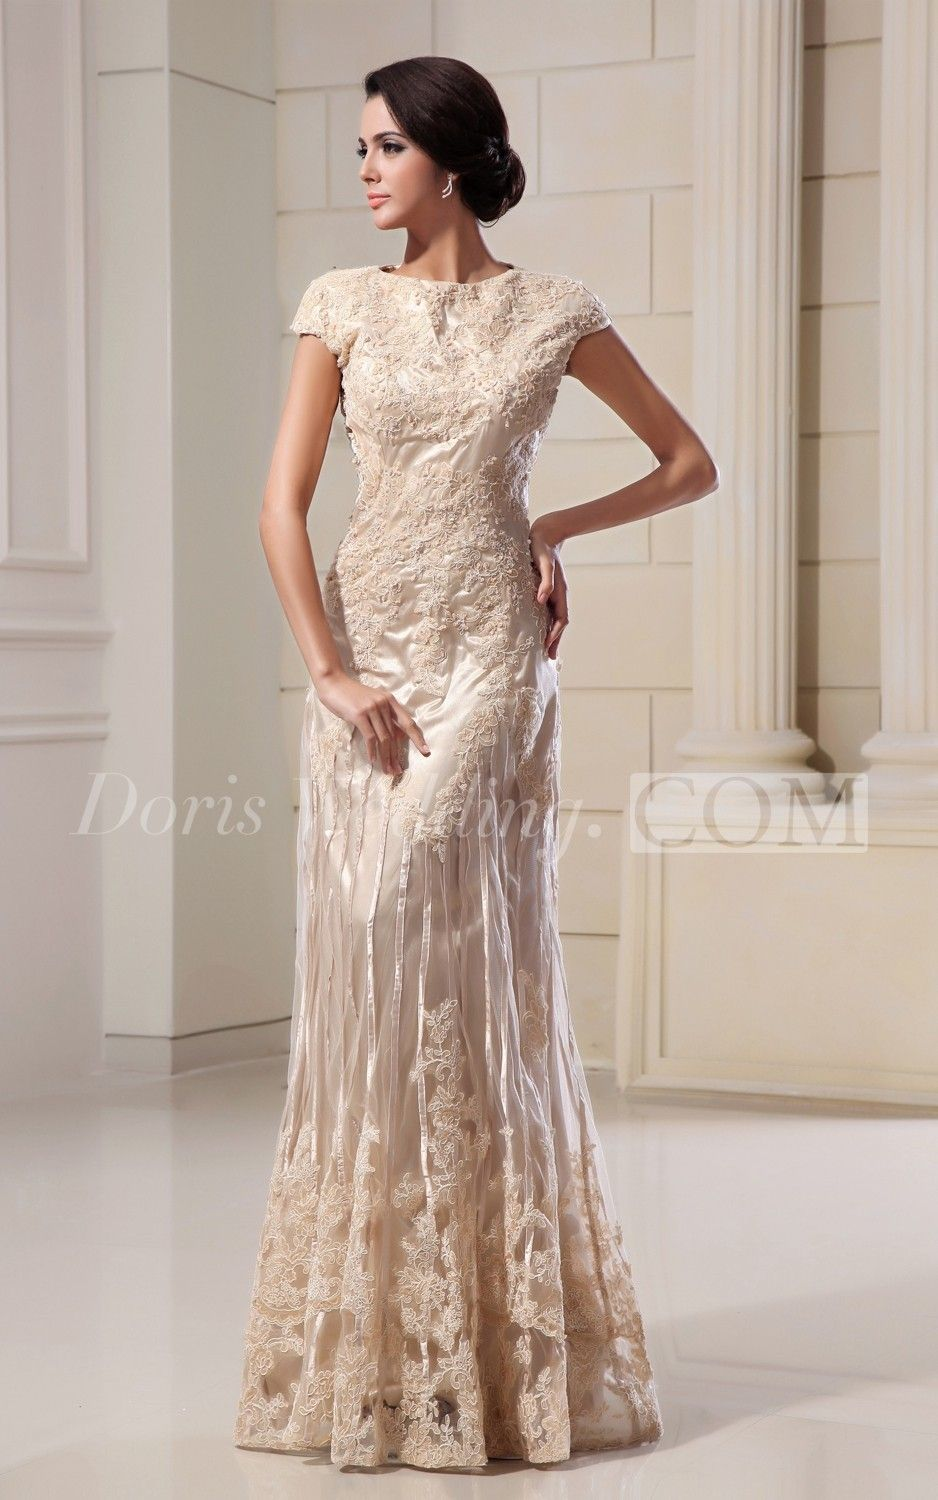 High neck sheath floor length dress with lace appliques garden high neck sheath floor length dress with lace appliques ombrellifo Image collections